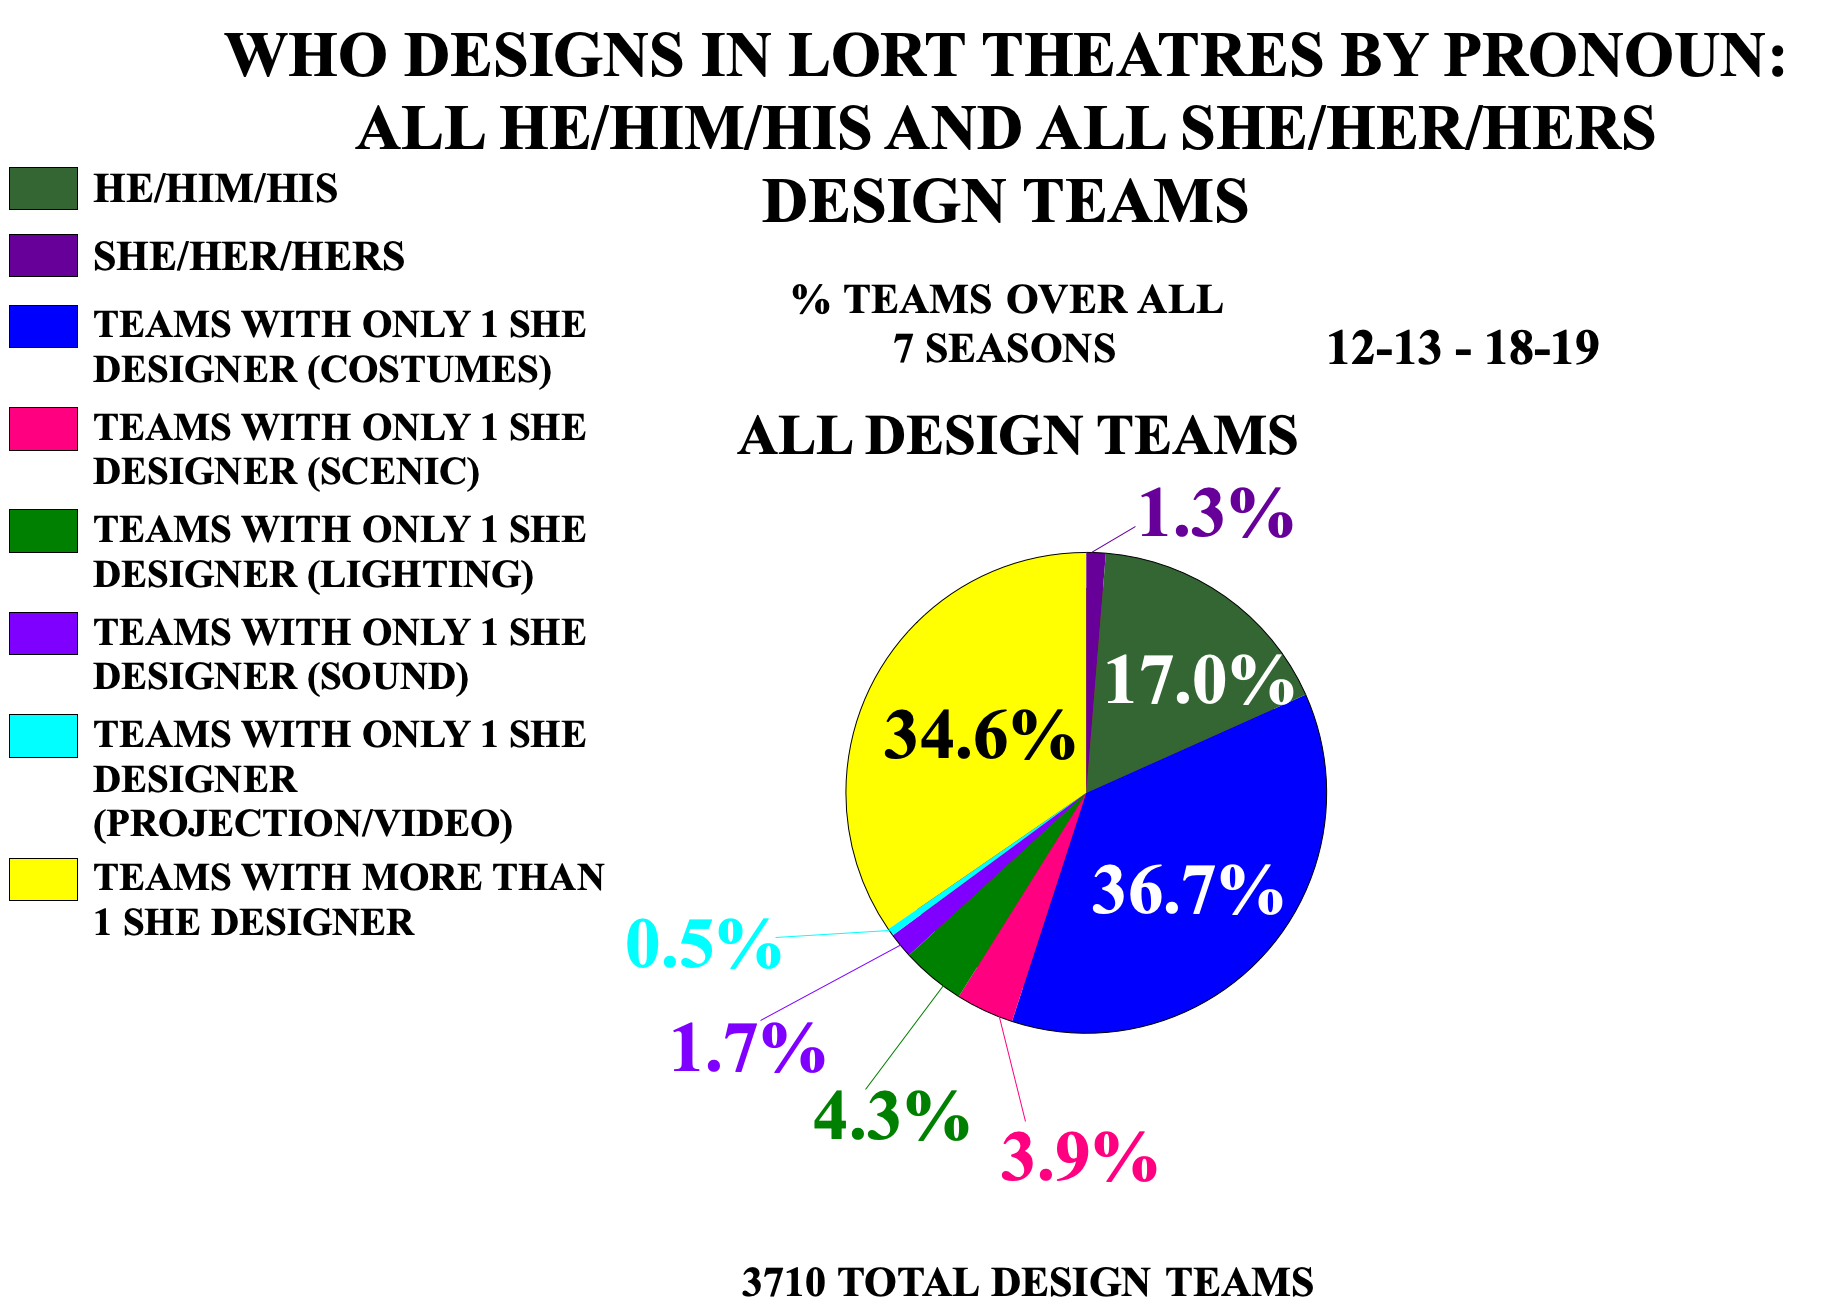 Who Designs in LORT Theatres by Pronoun: All He/Him/His and All She/Her/ Hers Design Teams